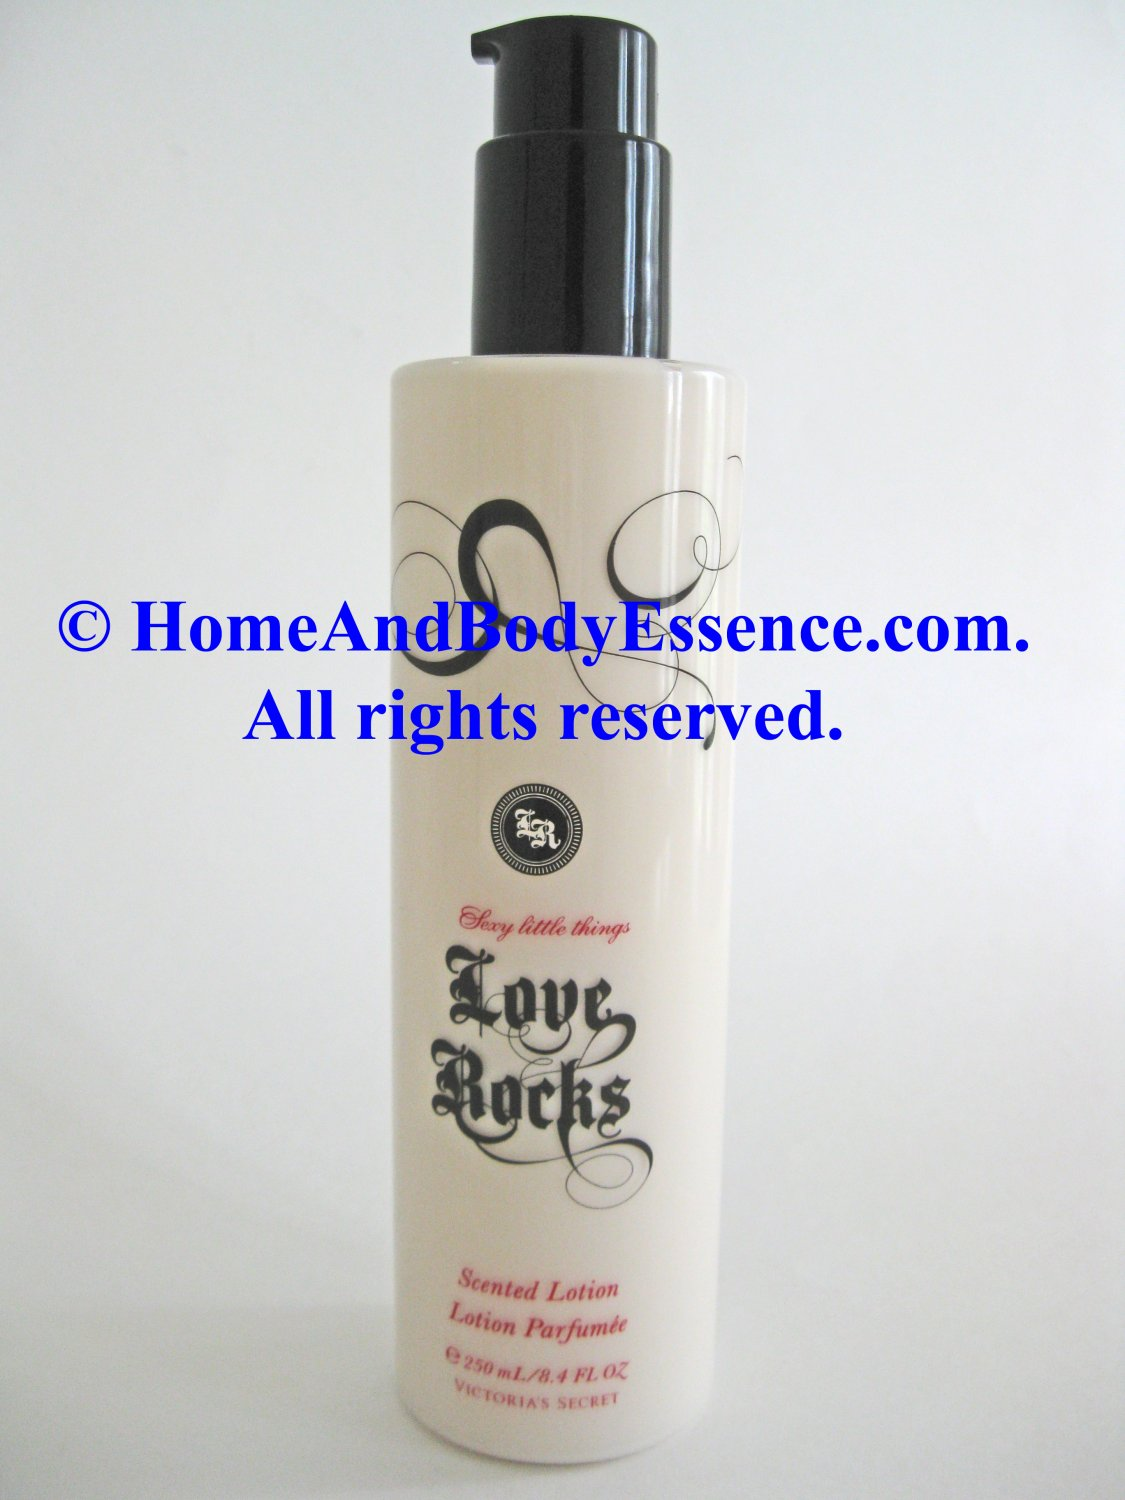 Victoria's Secret Love Rocks Lotion Body Sexy Little Things Parfum Perfume Fragrance Scented